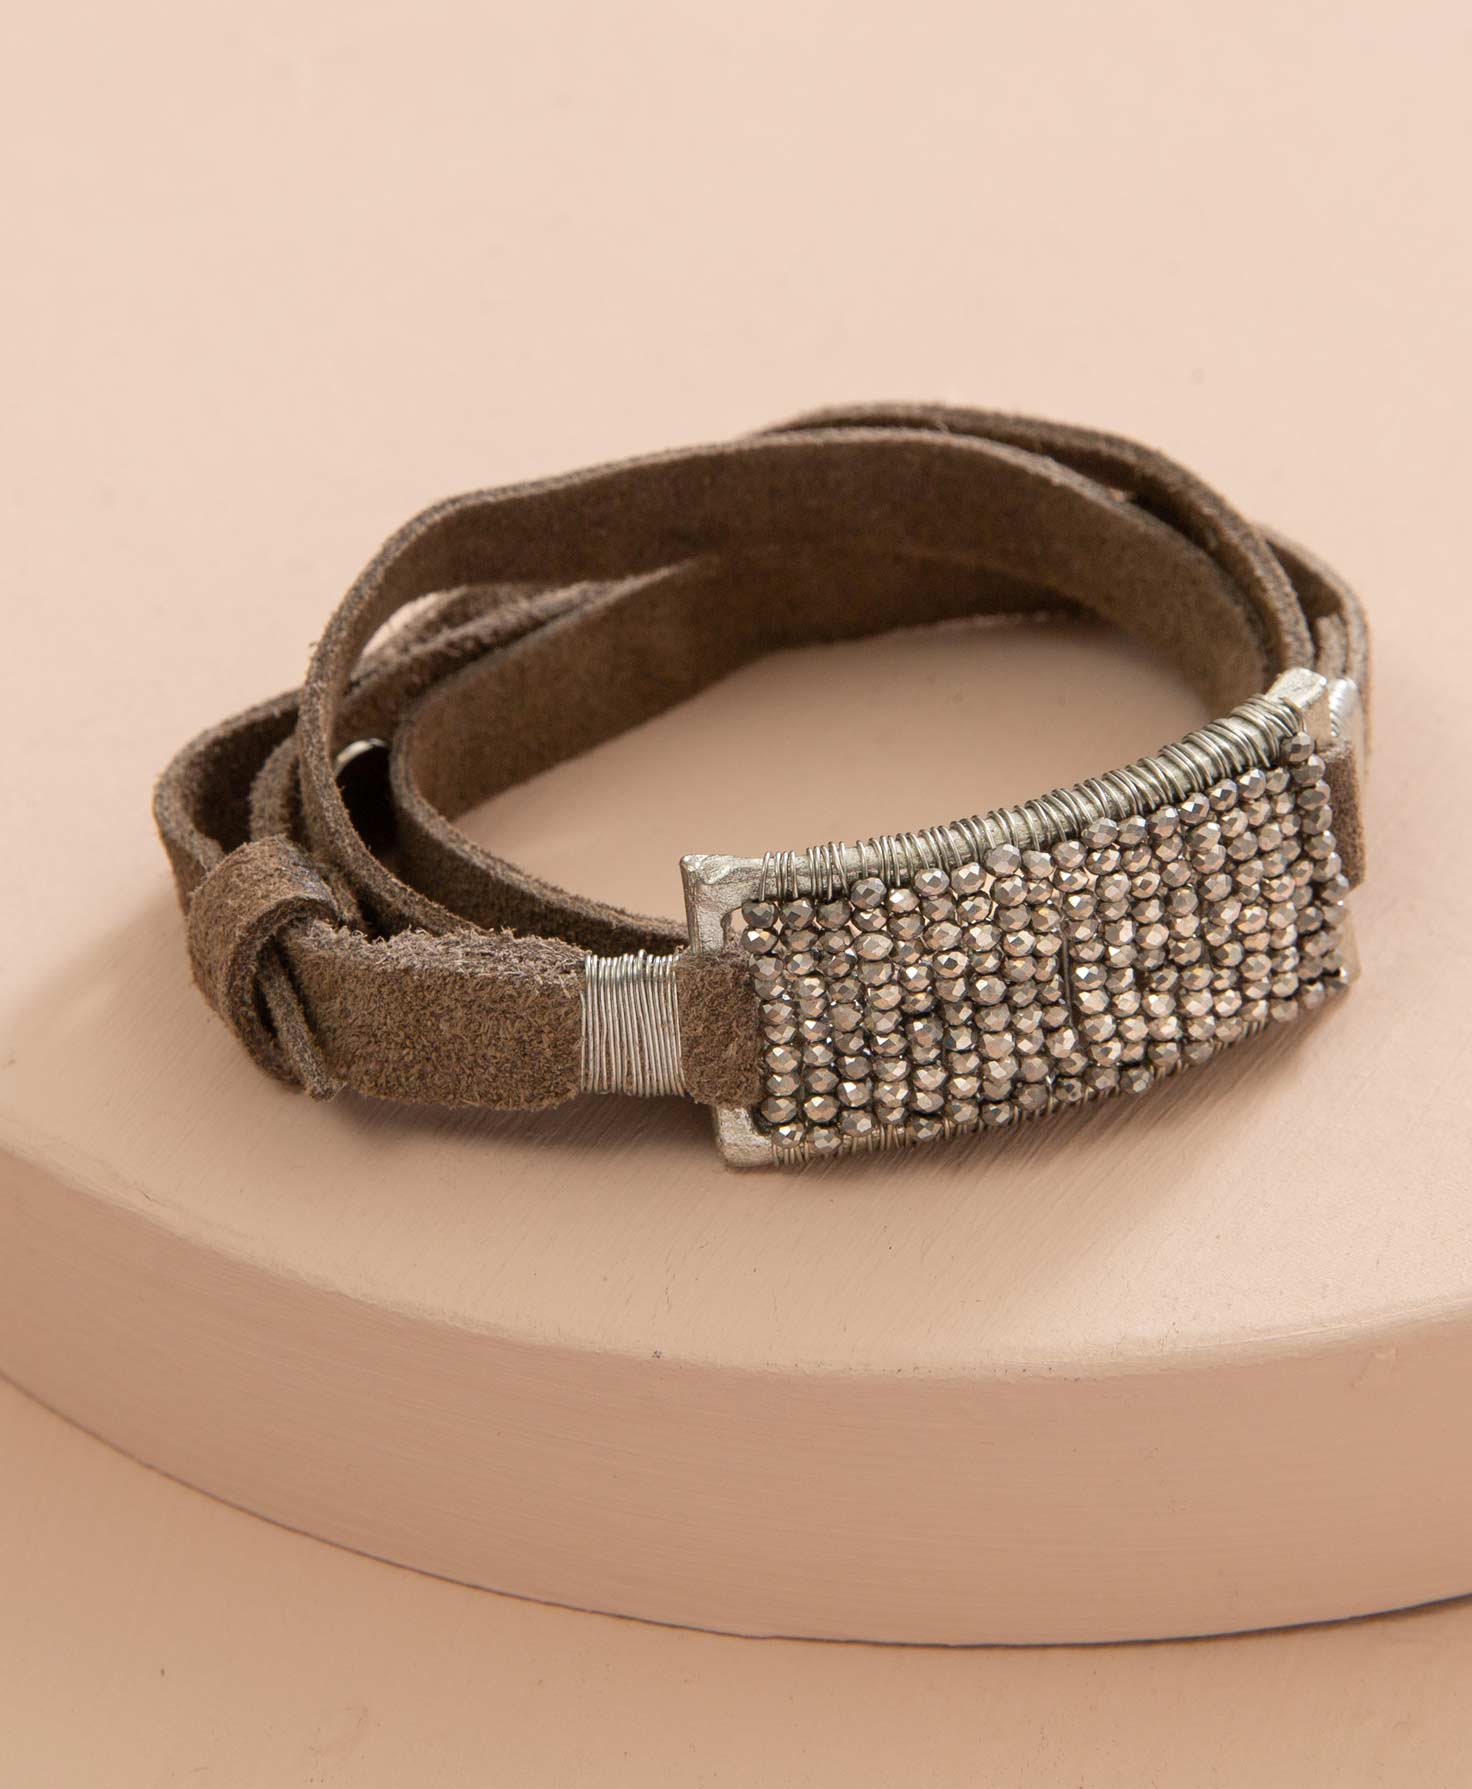 The Brilliant Leather Wrap Bracelet lays coiled on a round platform. The bracelet is composed primarily of a soft, smoky brown suede strip that wraps around the wrist. In the center of the bracelet is a rectangular, hammered silver piece. Dozens of faceted silver glass beads are strung in rows across the rectangle.